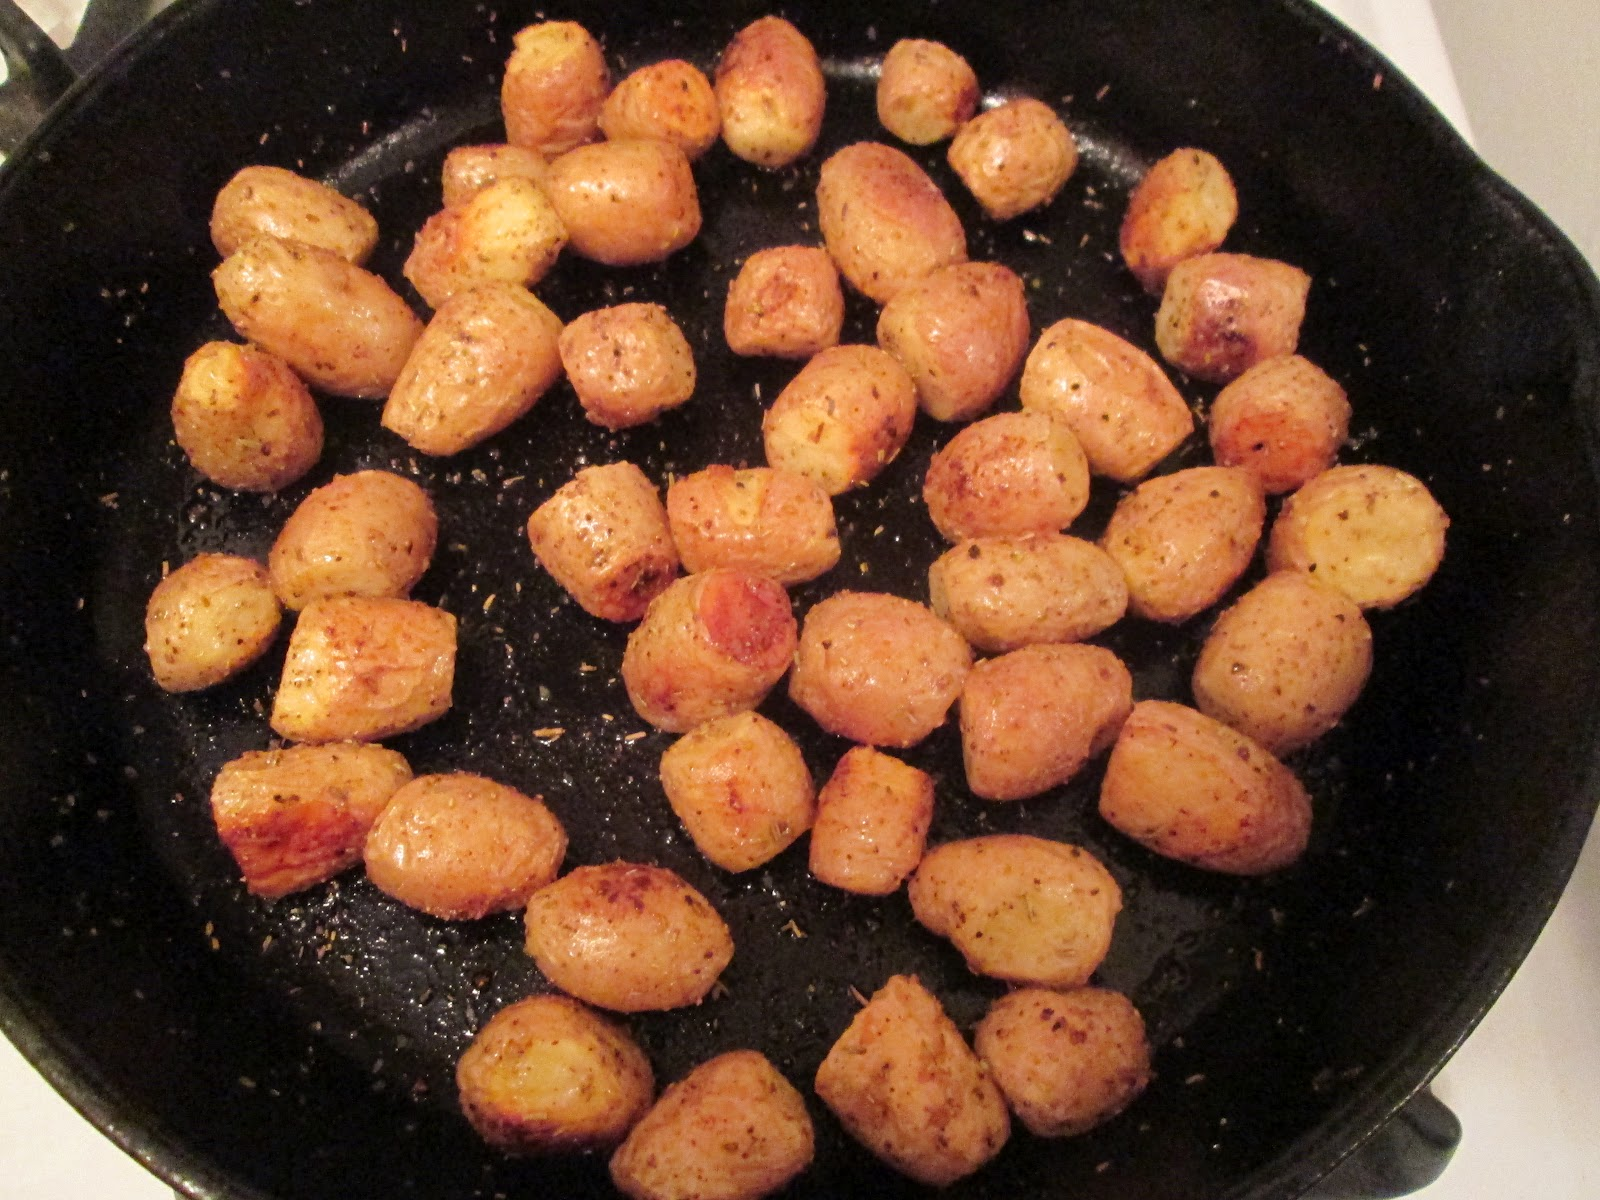 Roasted Teeny Tiny Potatoes